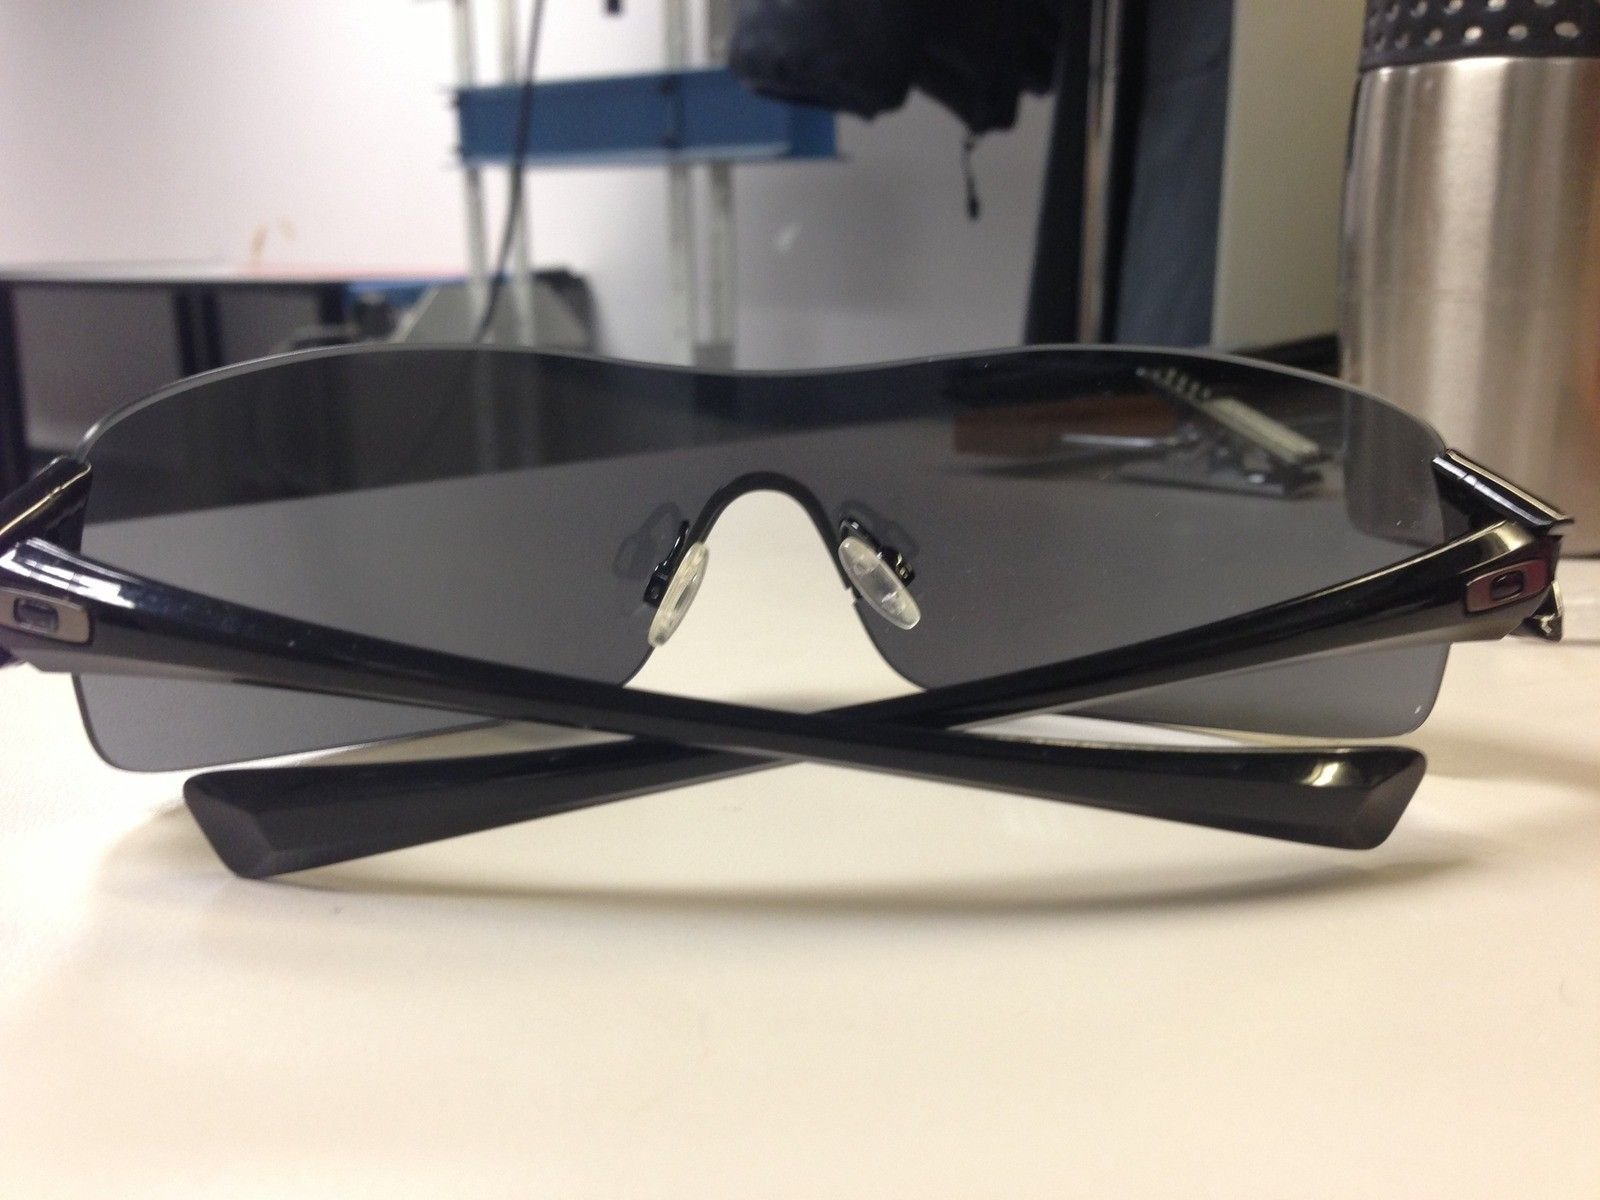 WTS: Coducts And GASCAN S Open To All Offers - oakleys006.jpg